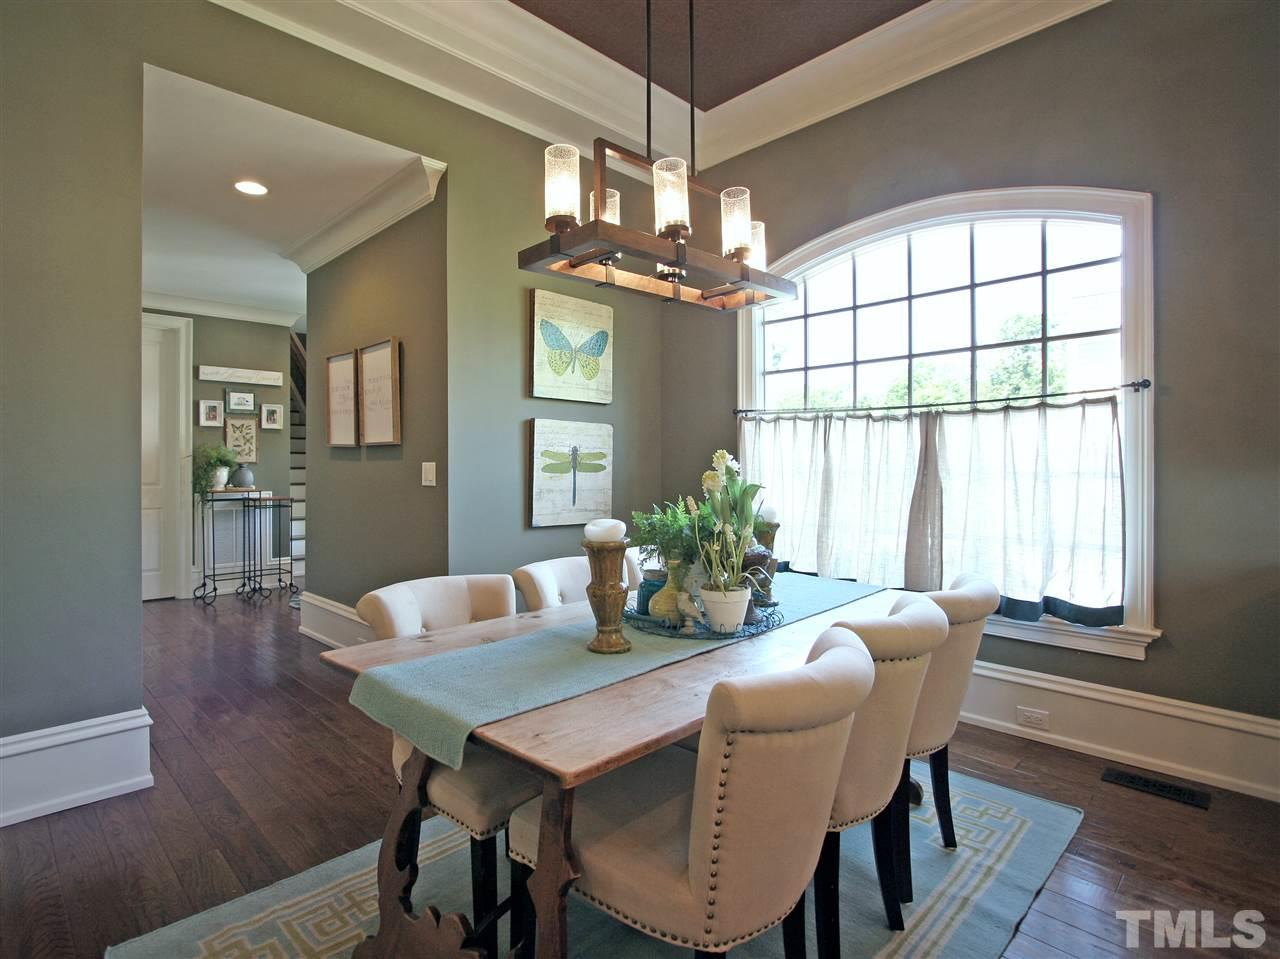 Linger over that second cup of coffee or tea in the delightful breakfast room. Note the arched window. Hallway to the left contains a built-in planning desk and accesses the side door, door to garage and laundry/mud room, and the home's second staircase.